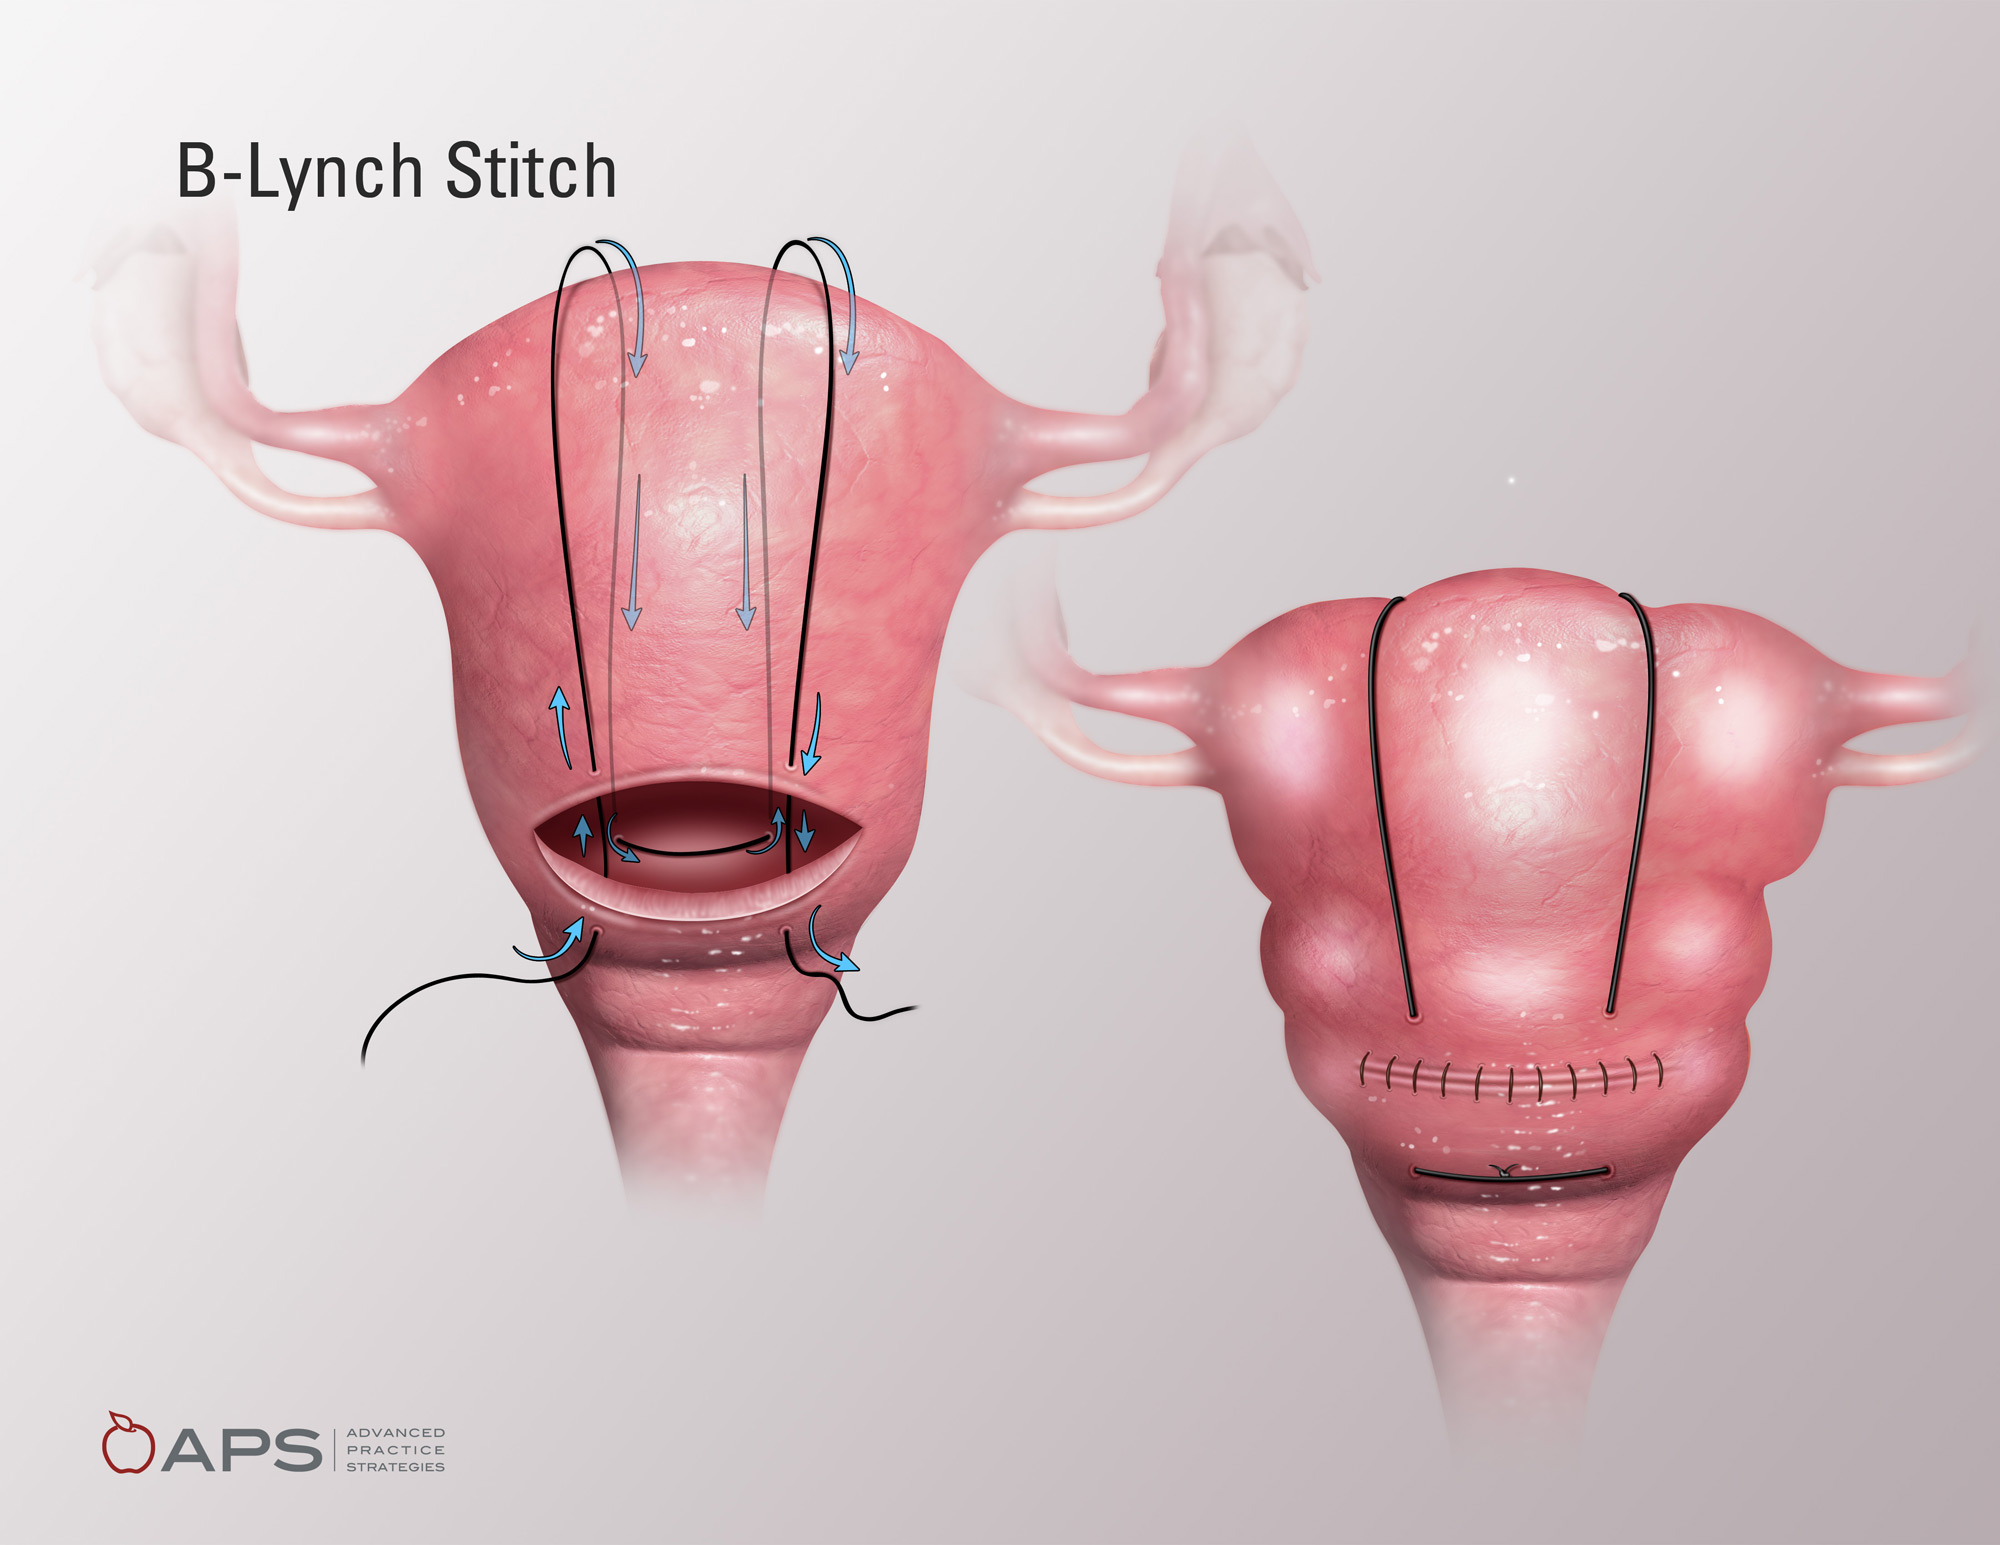 B-Lynch Stitch